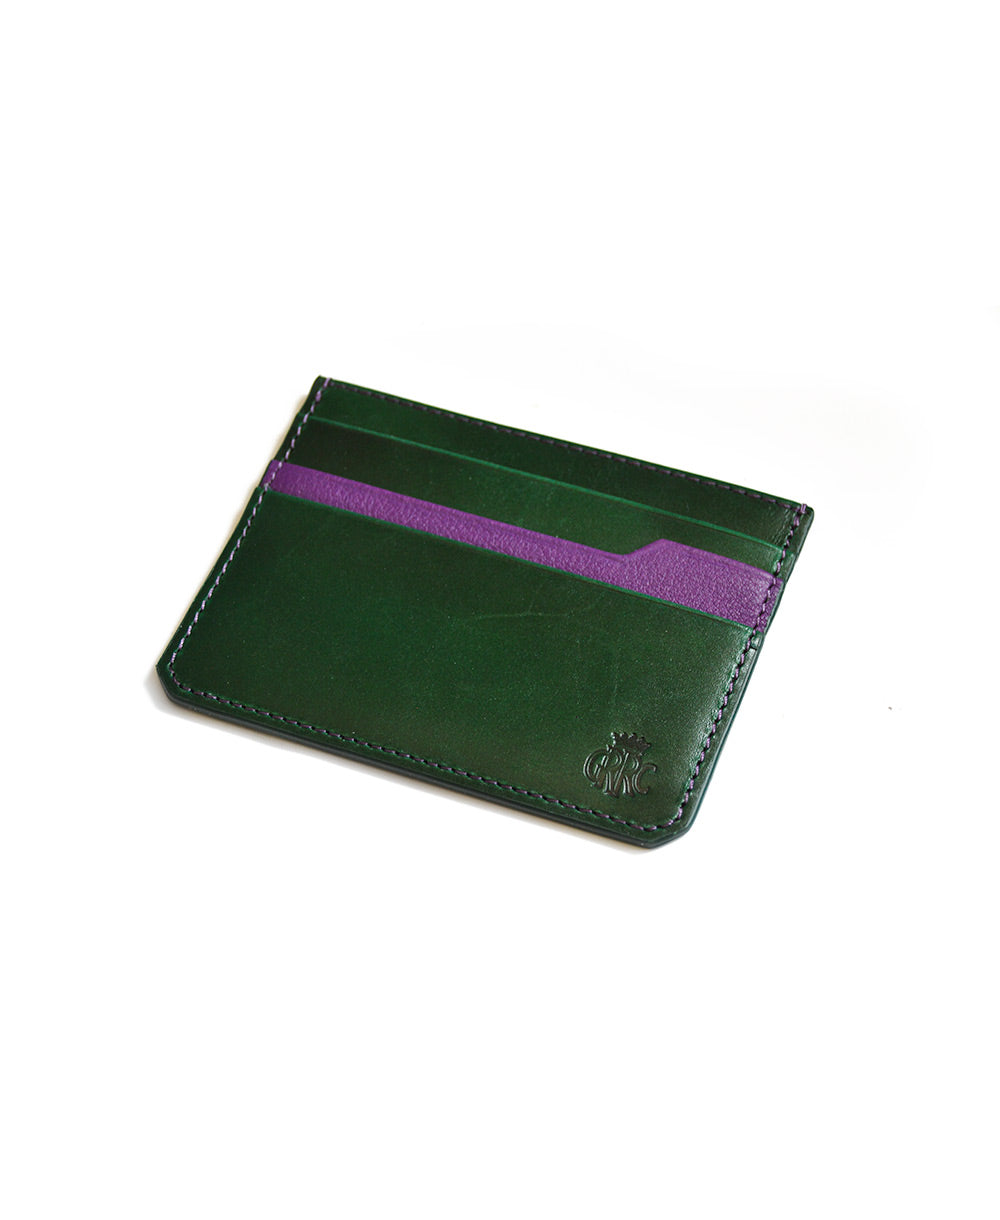 GRRC Leather Card Holder in Green & Purple